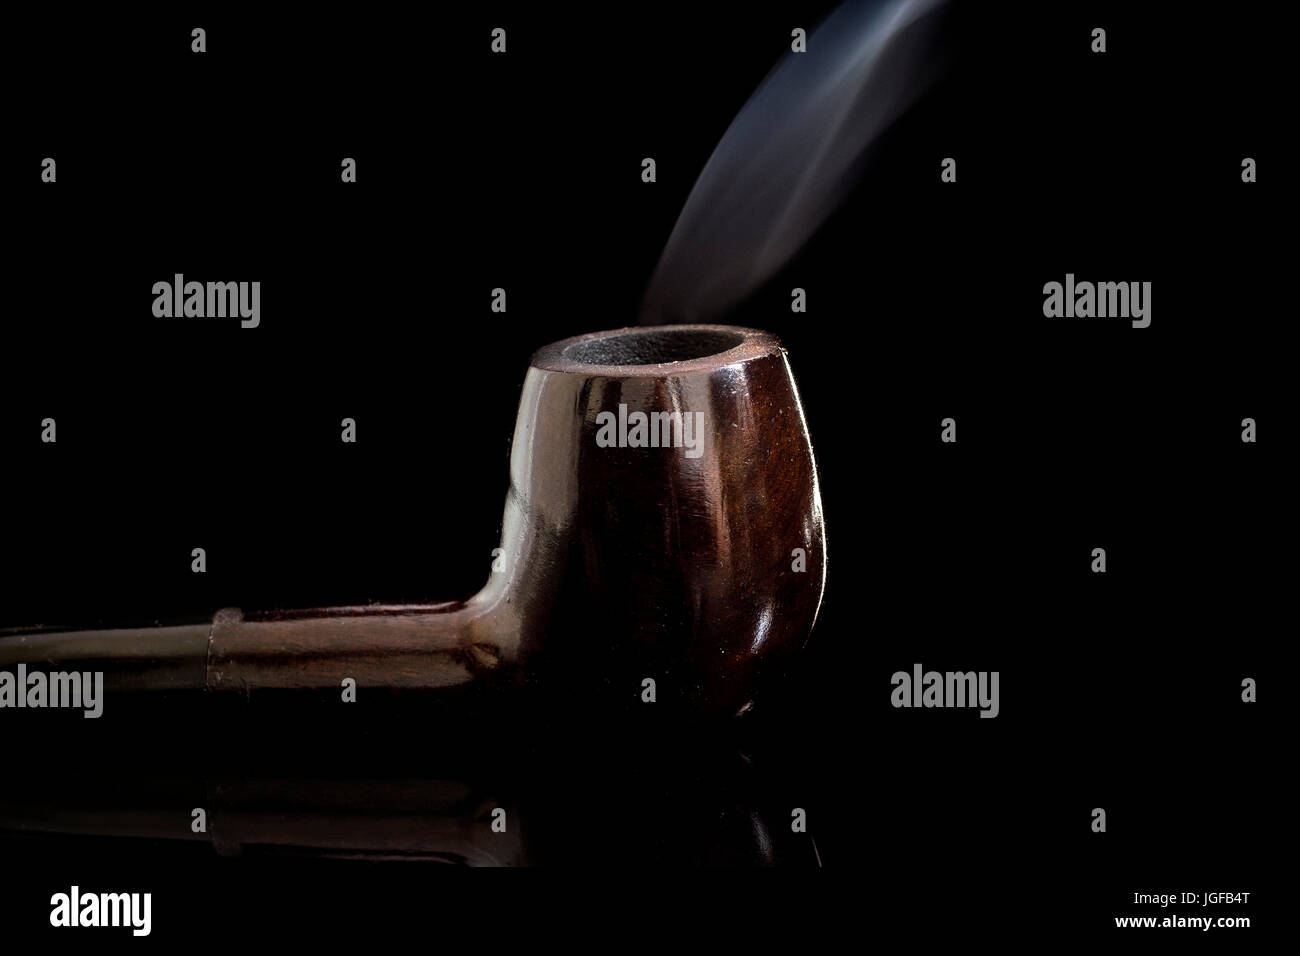 Lit Tobacco Smoking pipe reflective glass surface, with moving smoke, low key black background - Stock Image